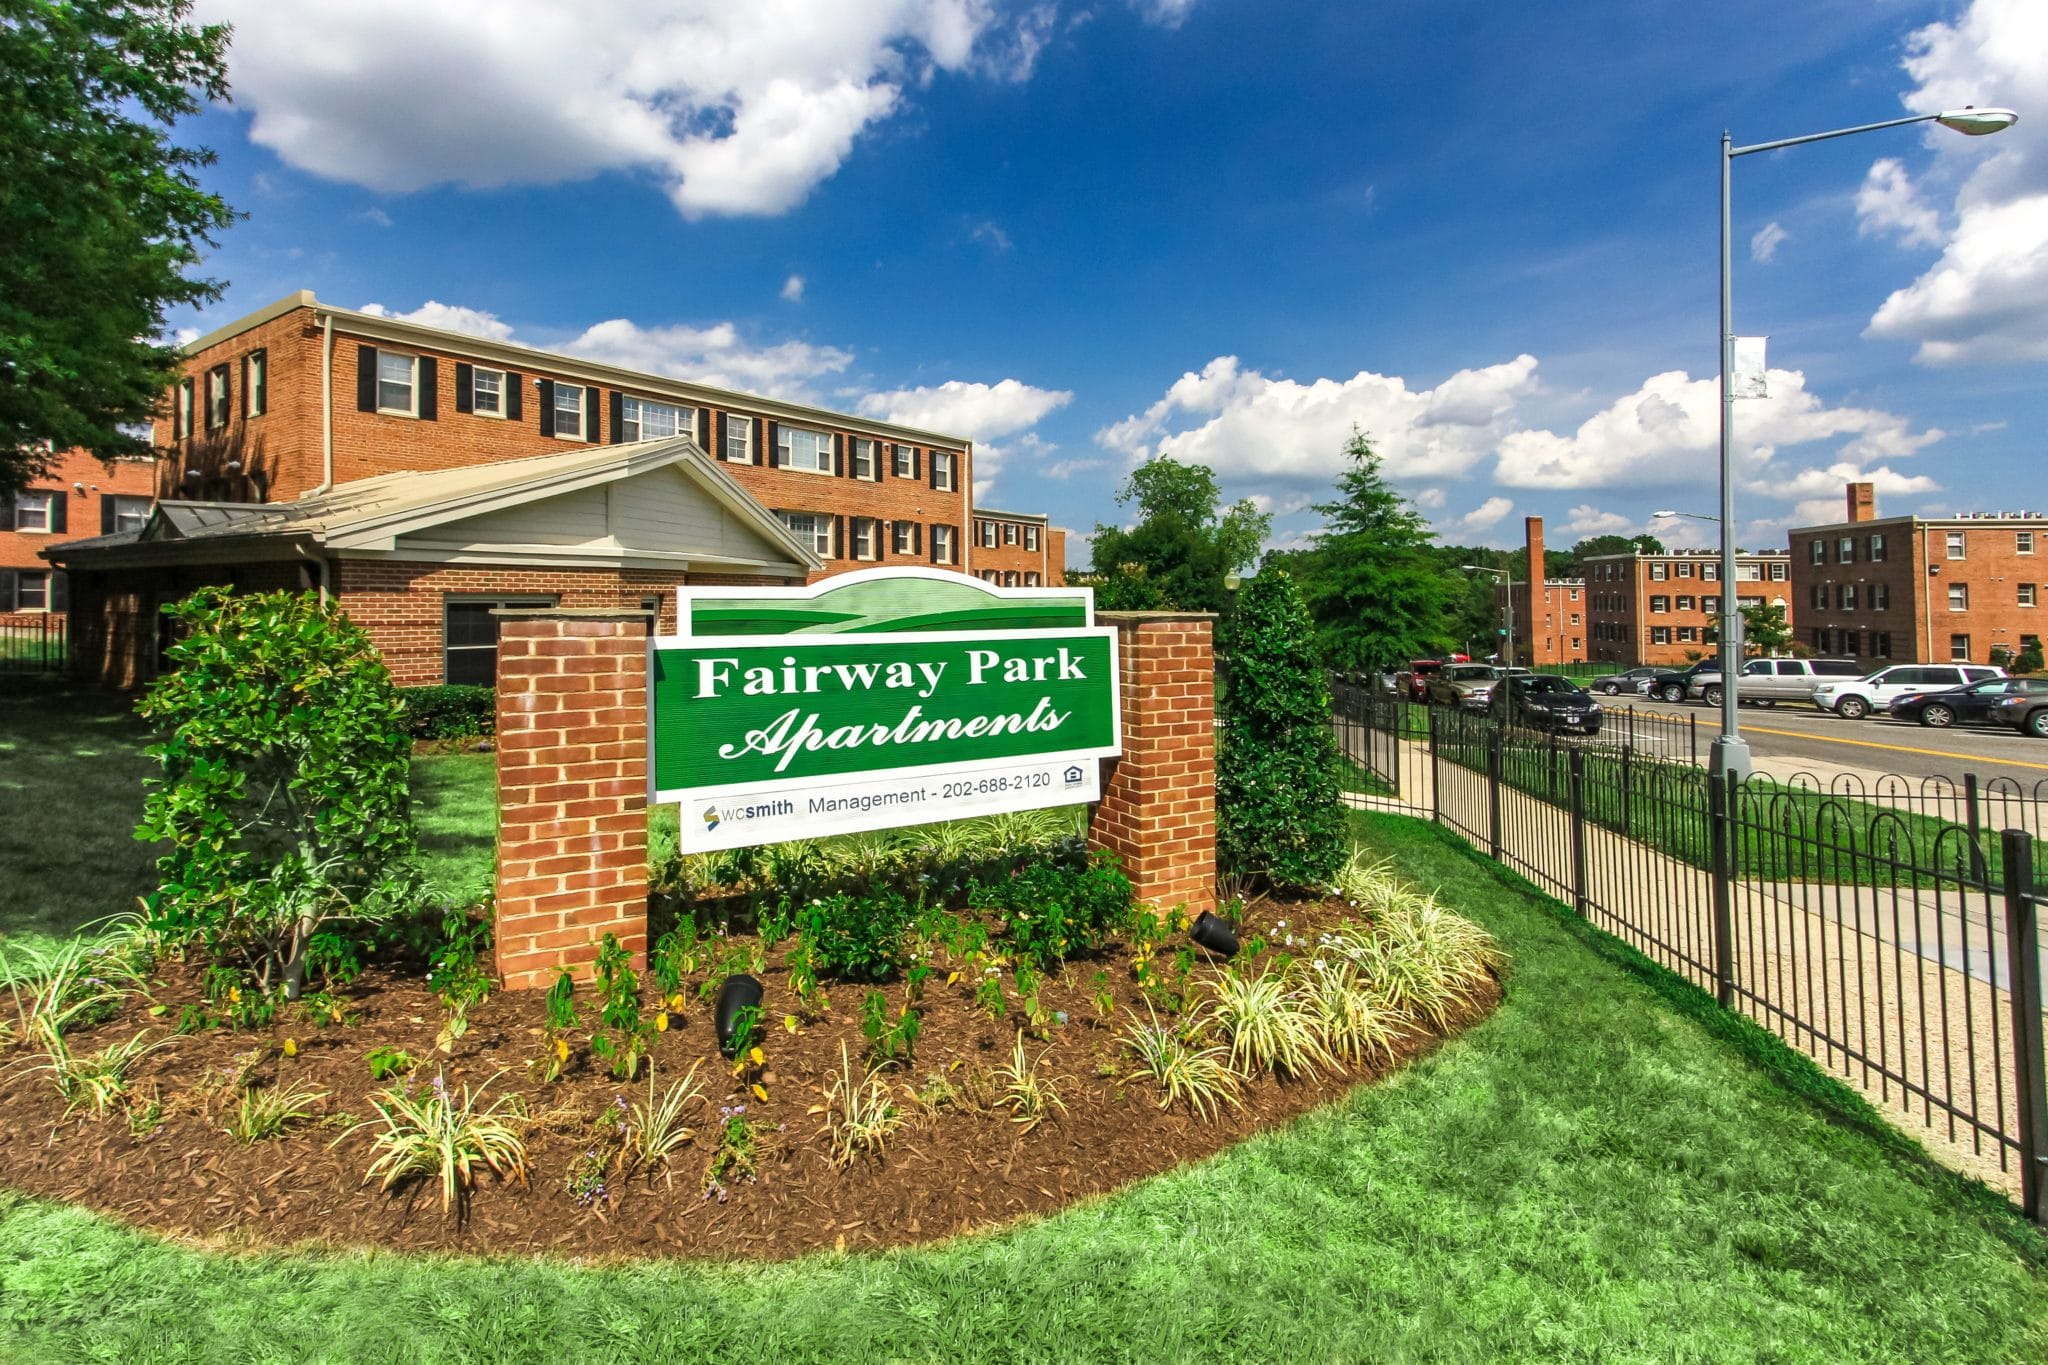 Fairway Park Apartments